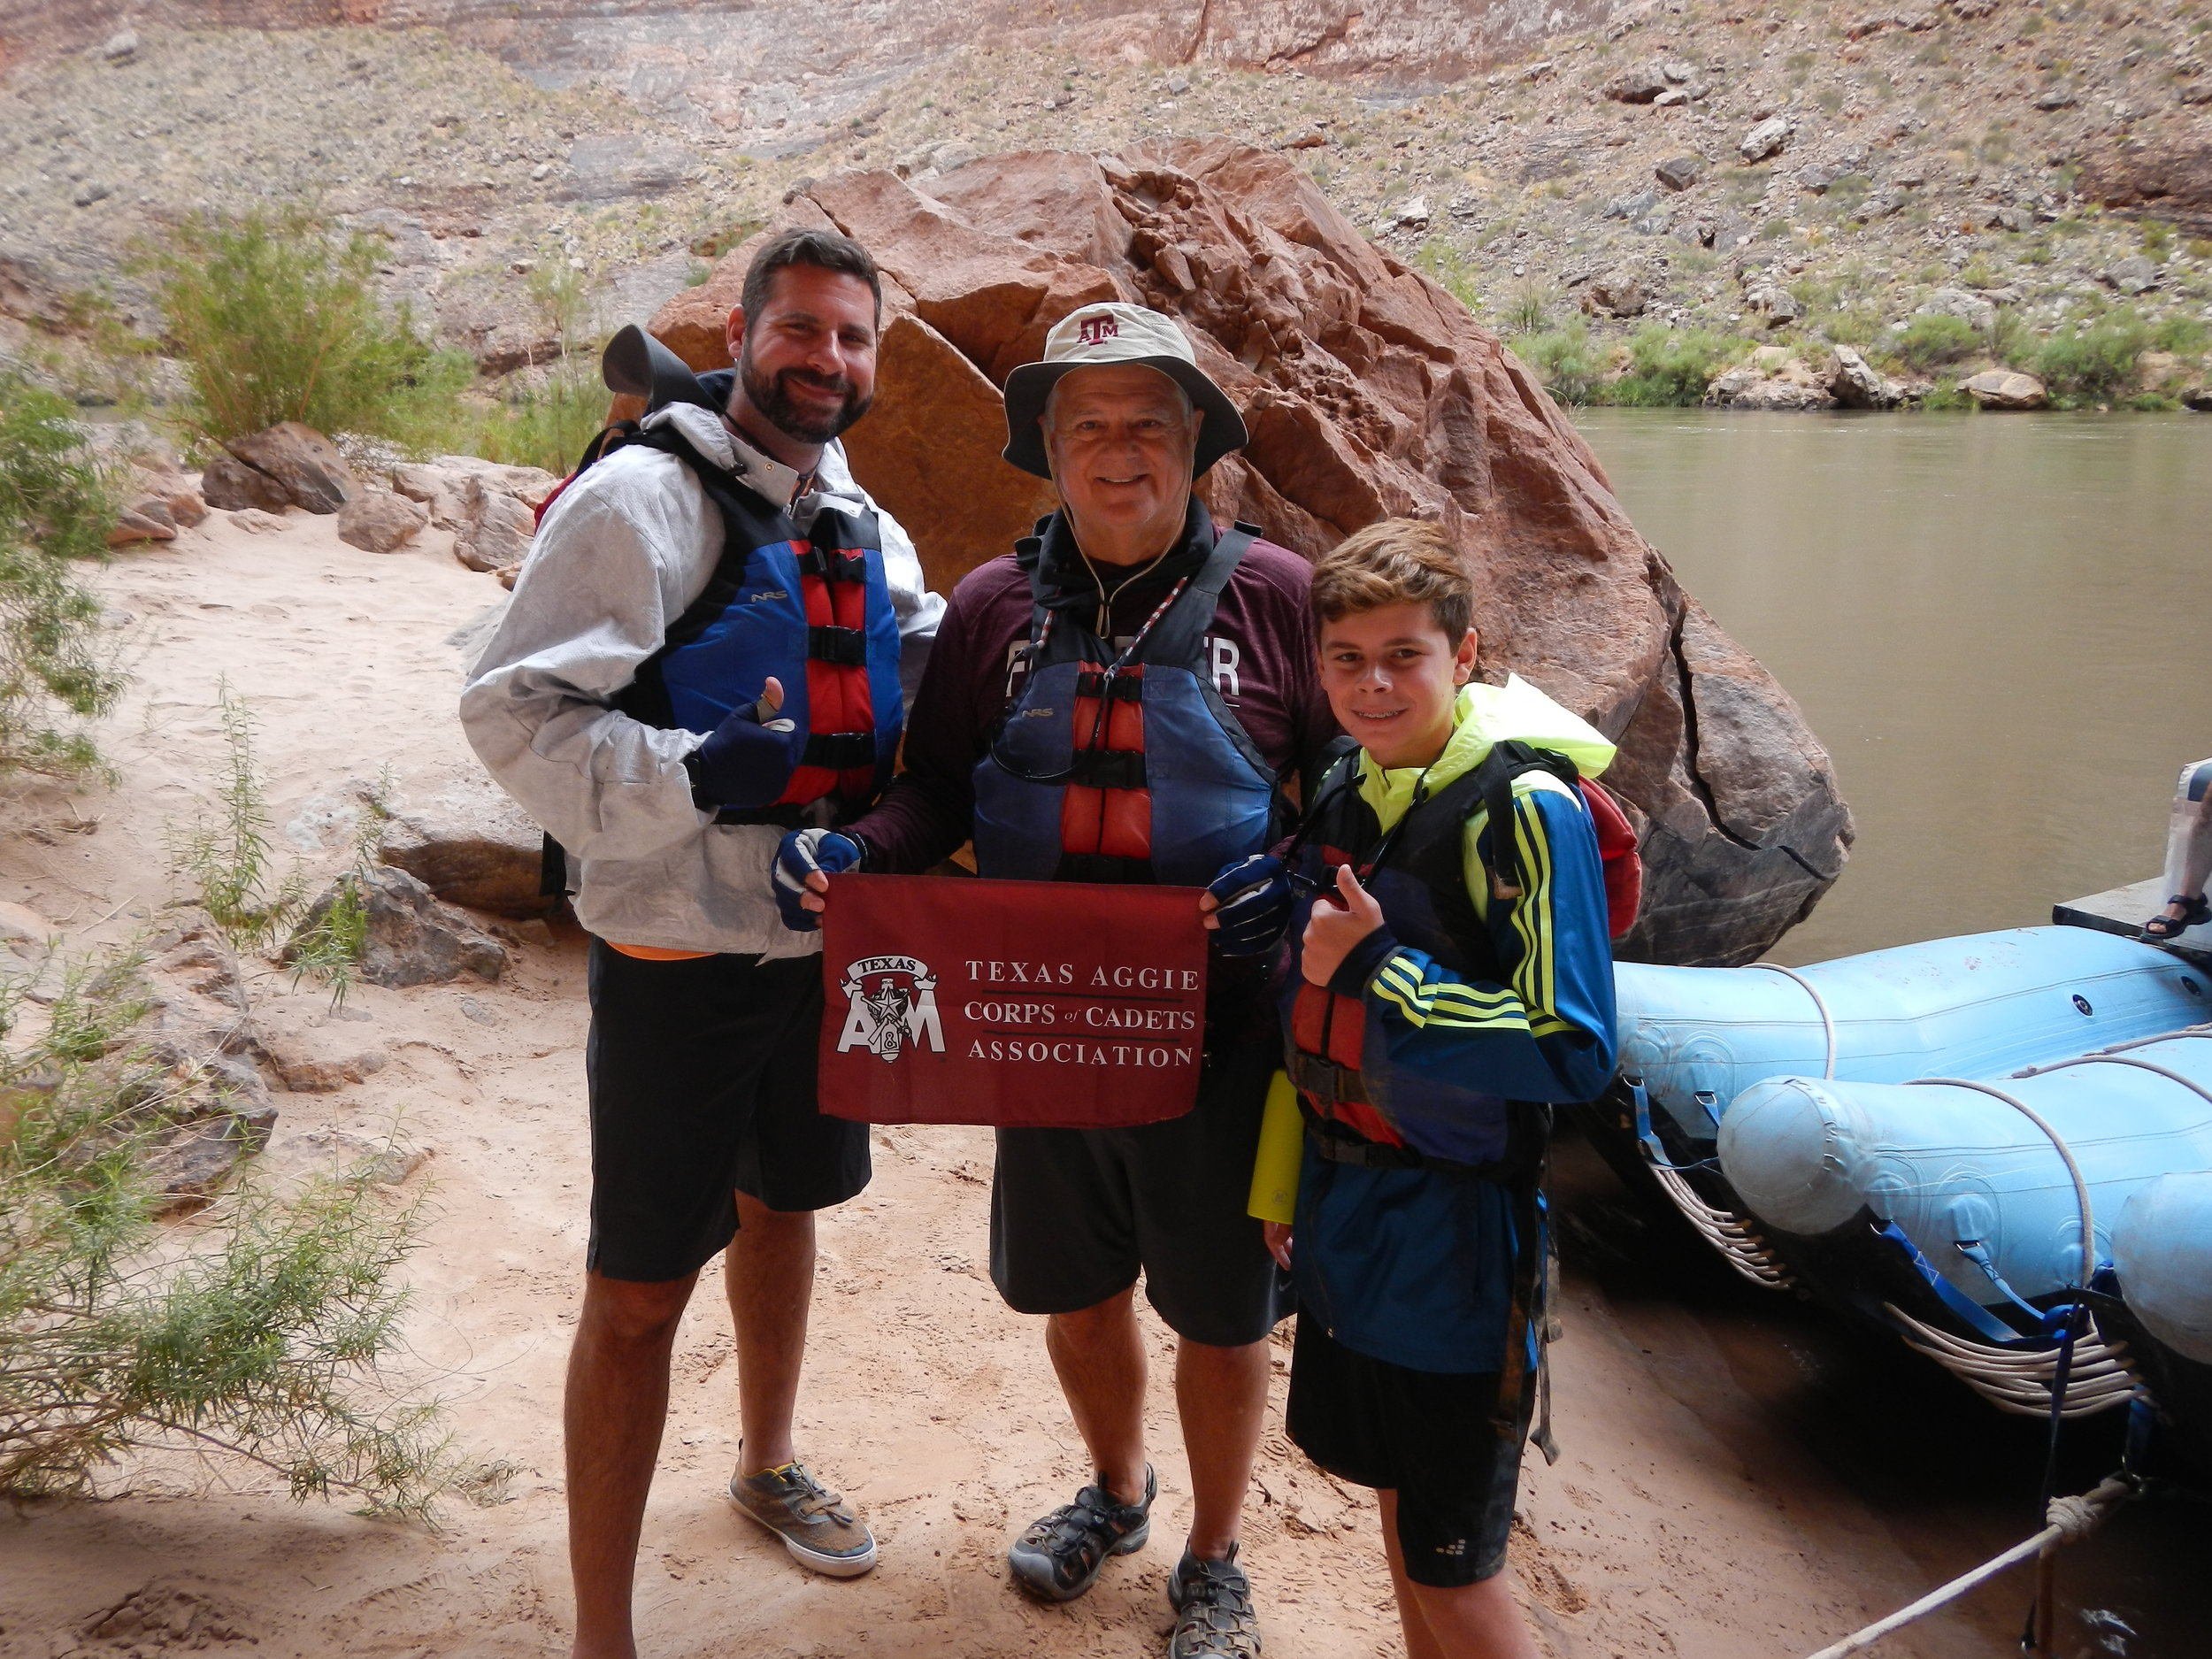 Doug Camp '72 with his son, Jarod '00 and Grandson Luke - Colorado River through the Grand Canyon, Summer 2019.JPG